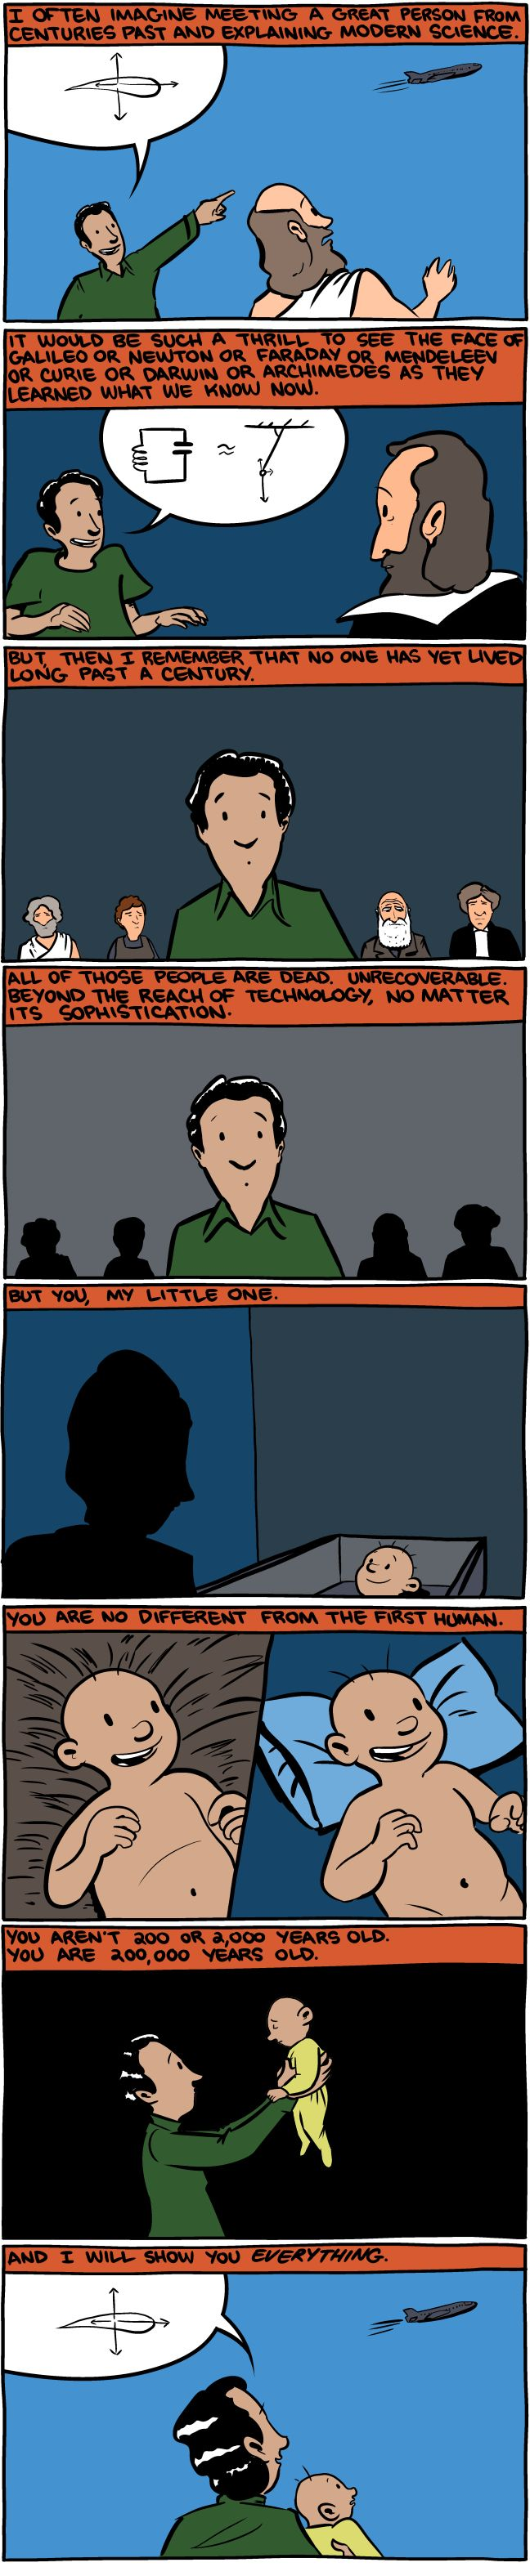 Normally SMBC has a cutting tone, but this?  Beautifully hopeful.  From Saturday Morning Breakfast Cereal